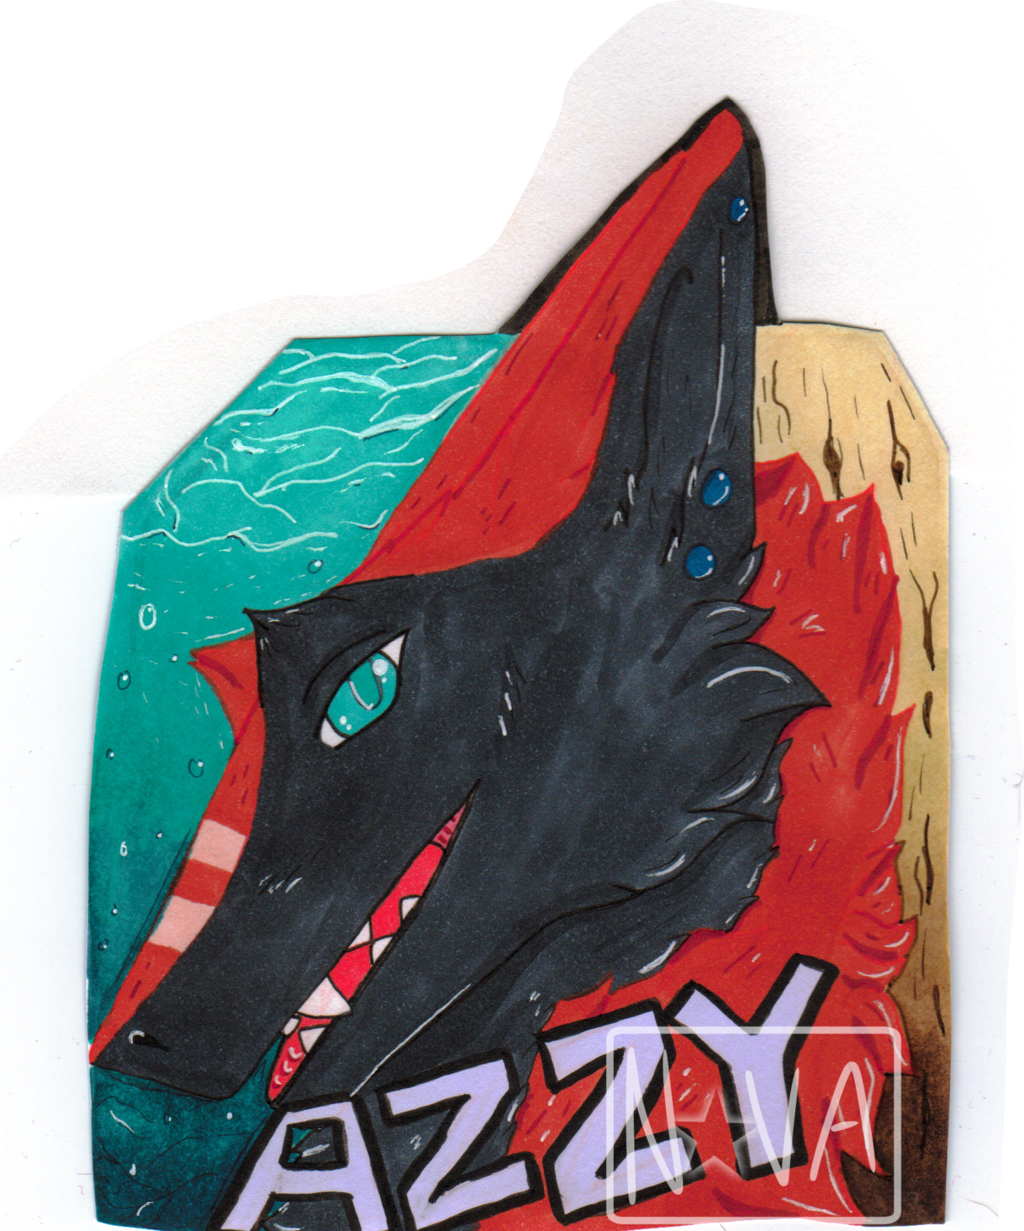 Most recent image: Azzy Badge